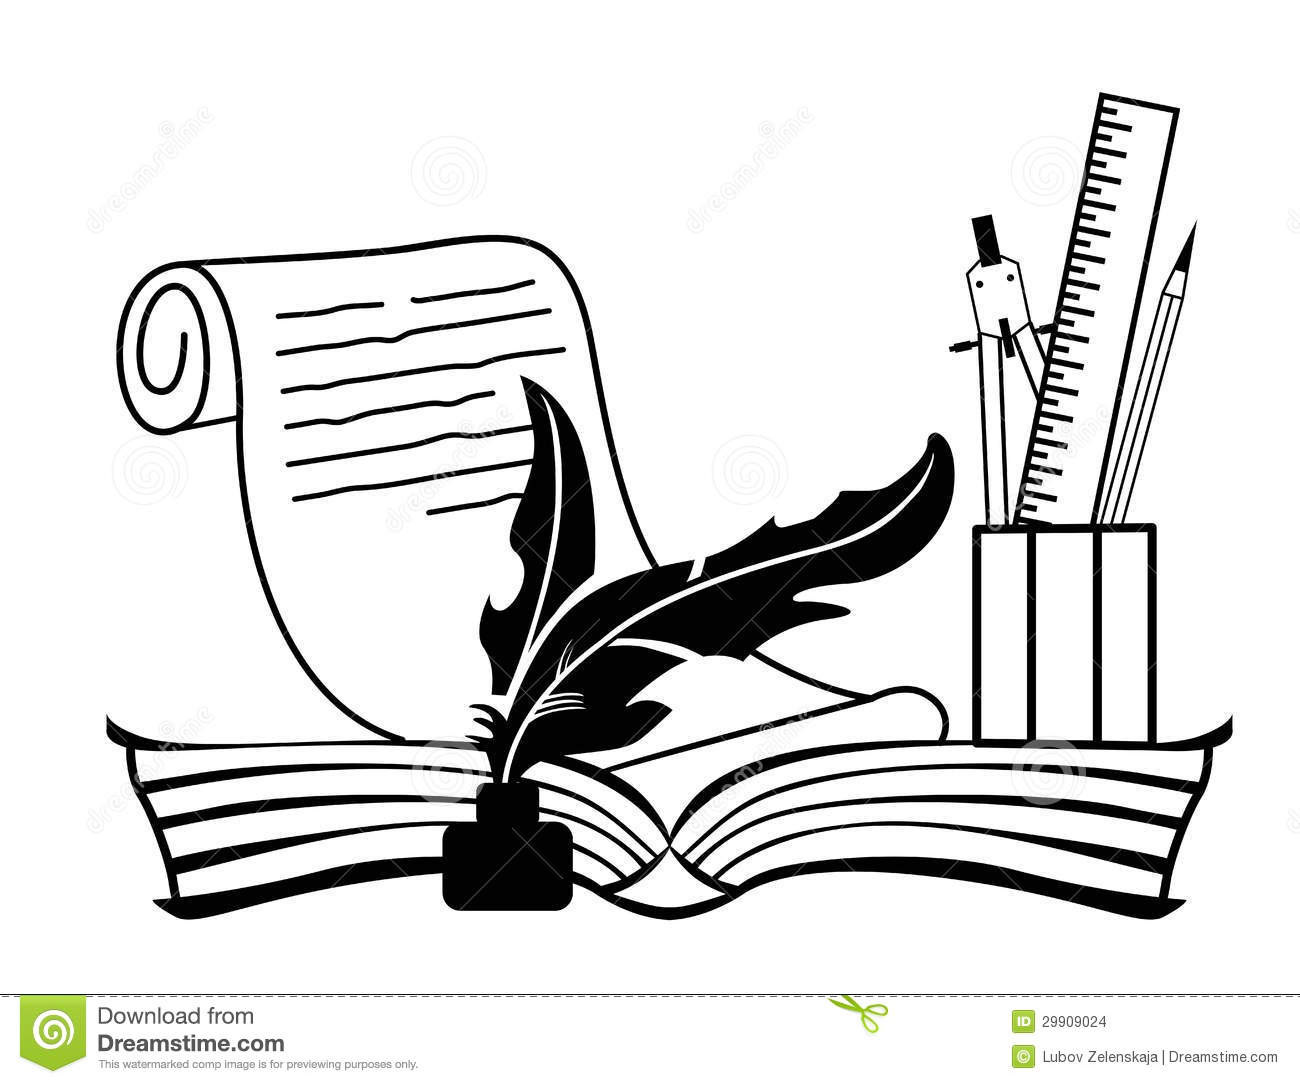 Open books with pen clipart banner black and white stock Open books with pen clipart - ClipartFest banner black and white stock